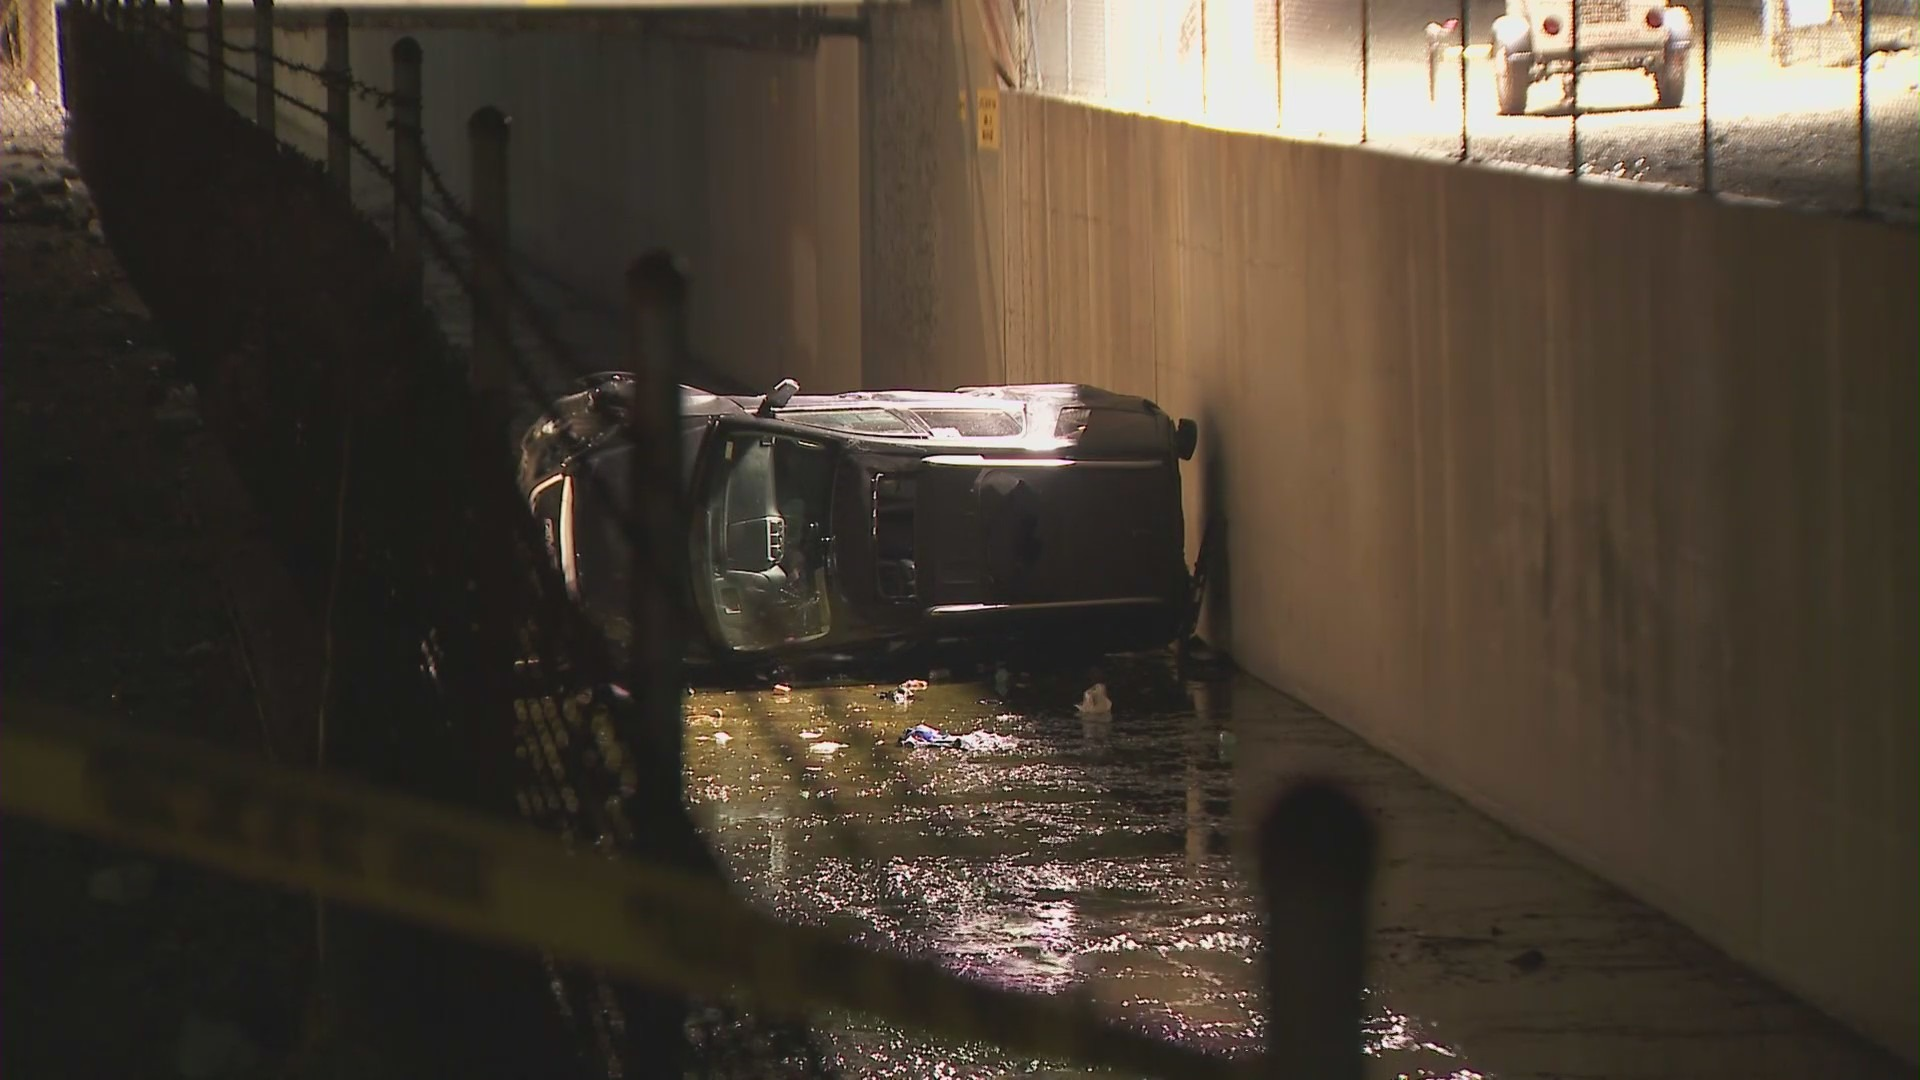 A car ending up in a drainage canal after police in Azusa shot a man on Oct. 22, 2021. (KTLA)